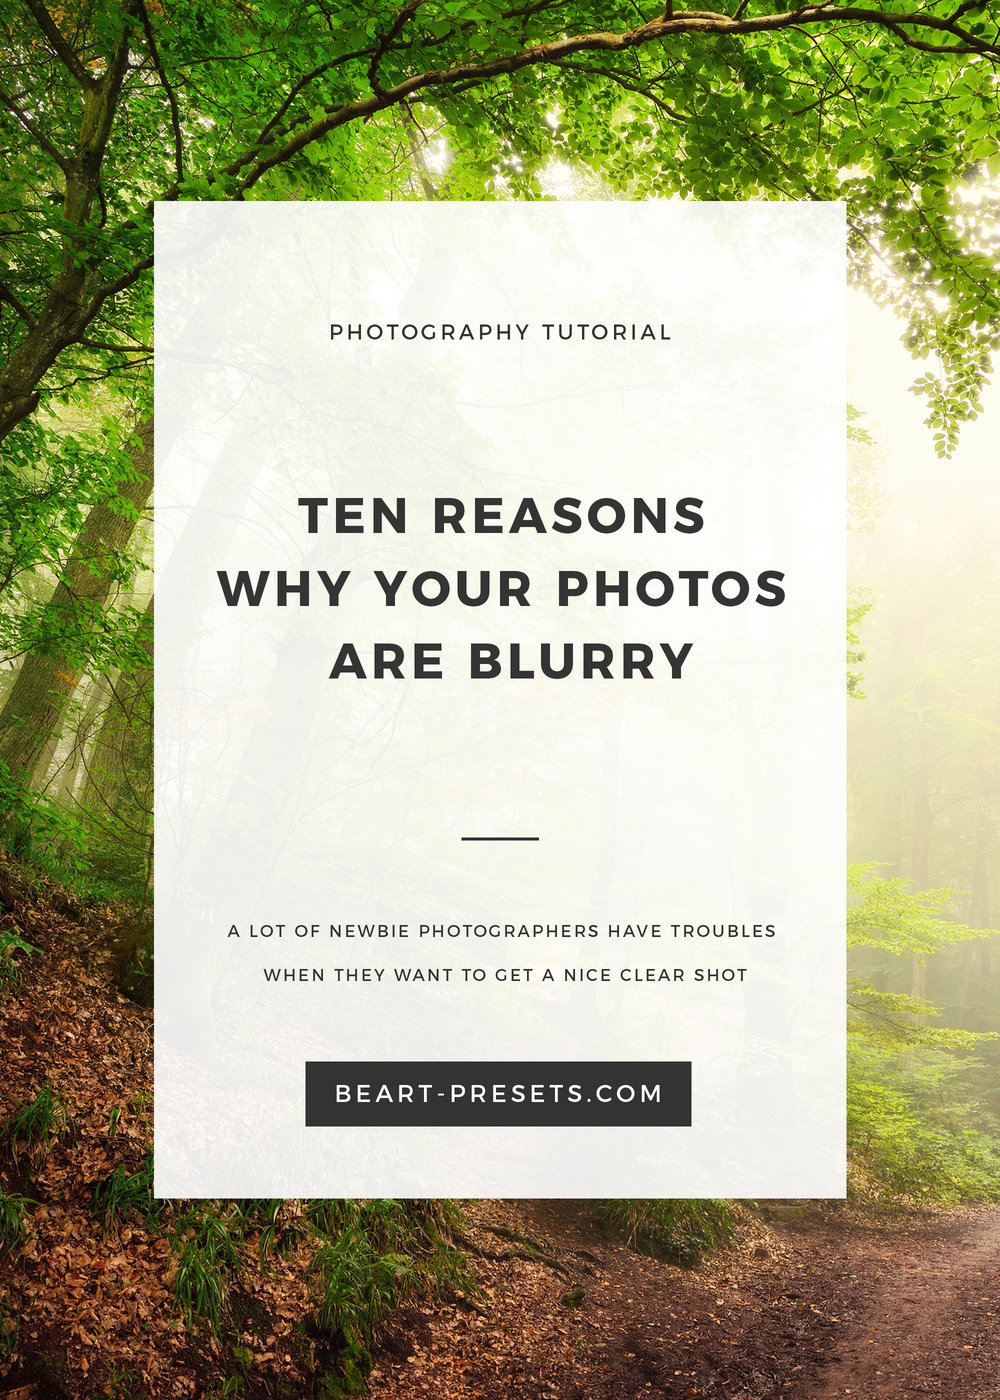 TEN REASONS WHY YOUR PHOTOS ARE BLURRY.jpg